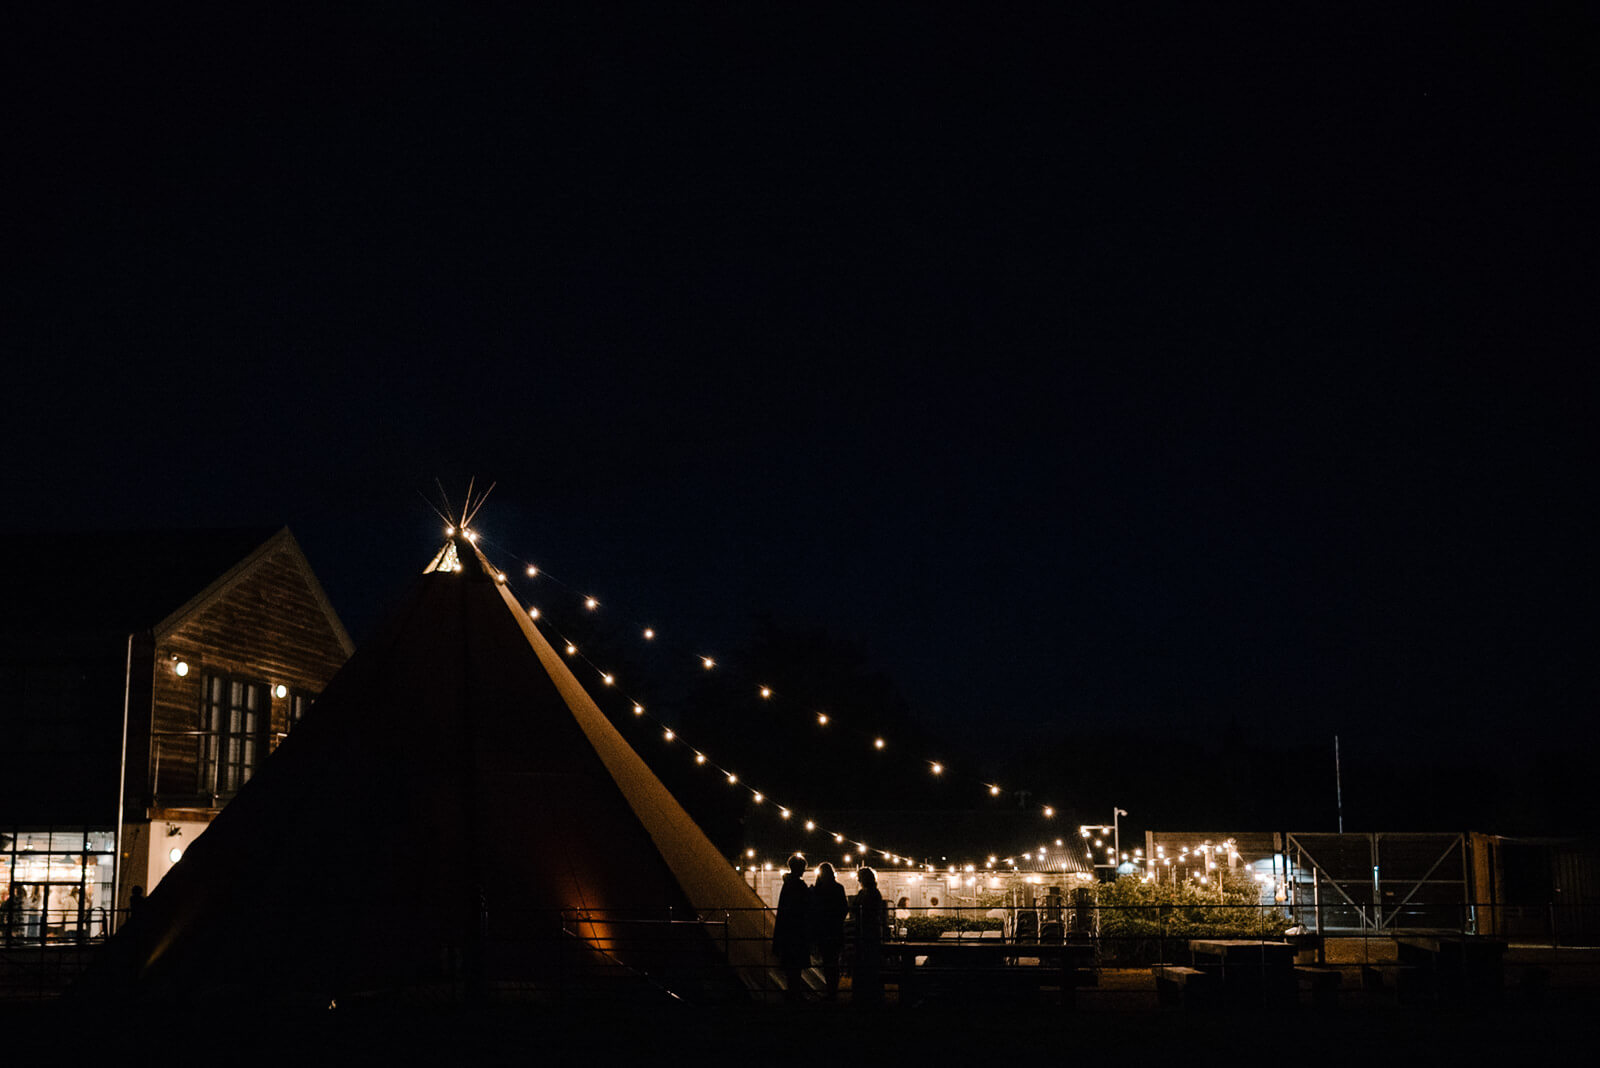 Festoon lighting glows at Glove Factory Studios Wedding in Wiltshire